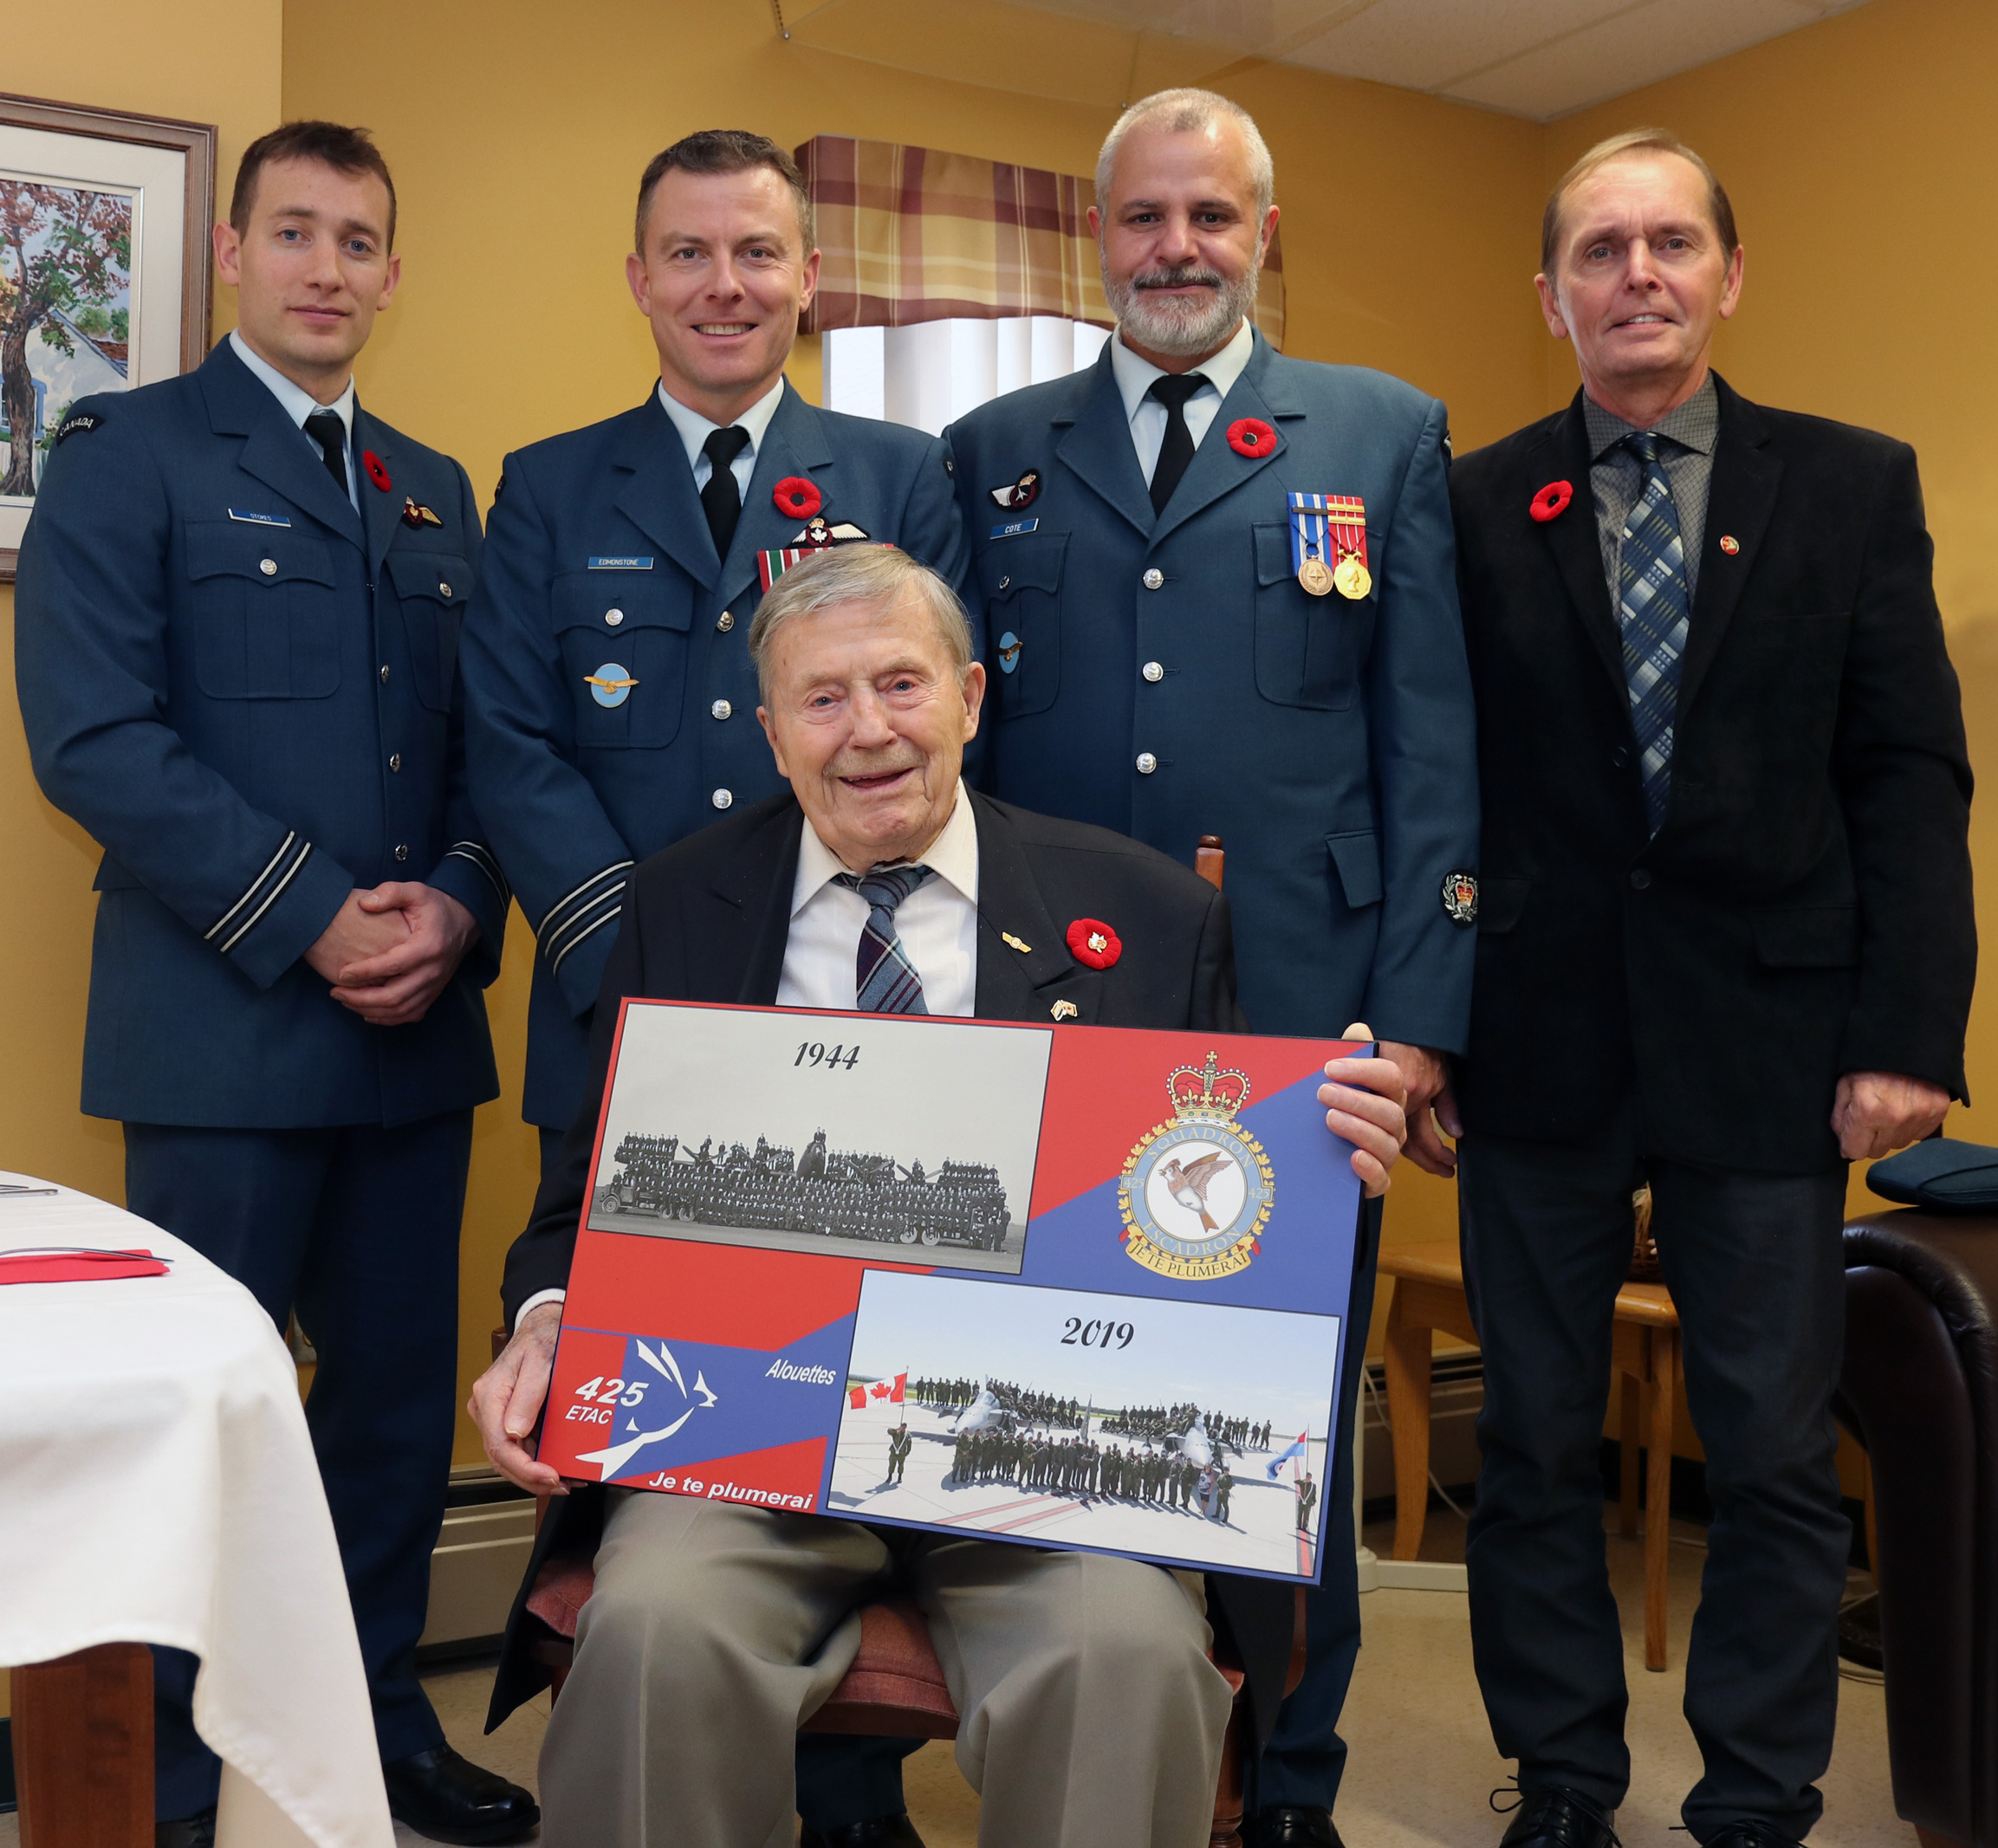 Several members of the 425 Tactical Fighter Squadron family visited one of their war-era veterans on Remembrance Day 2019. From left: Captain Matt Stokes, Lieutenant-Colonel Jody Edmonstone, Master Warrant Officer Gino Coté and Mr. Richard Girouard and Flight Sergeant (retired) Jean Cauchy (seated). Flight Sergeant Cauchy was presented with a 425 Squadron commemorative plaque. PHOTO: Submitted